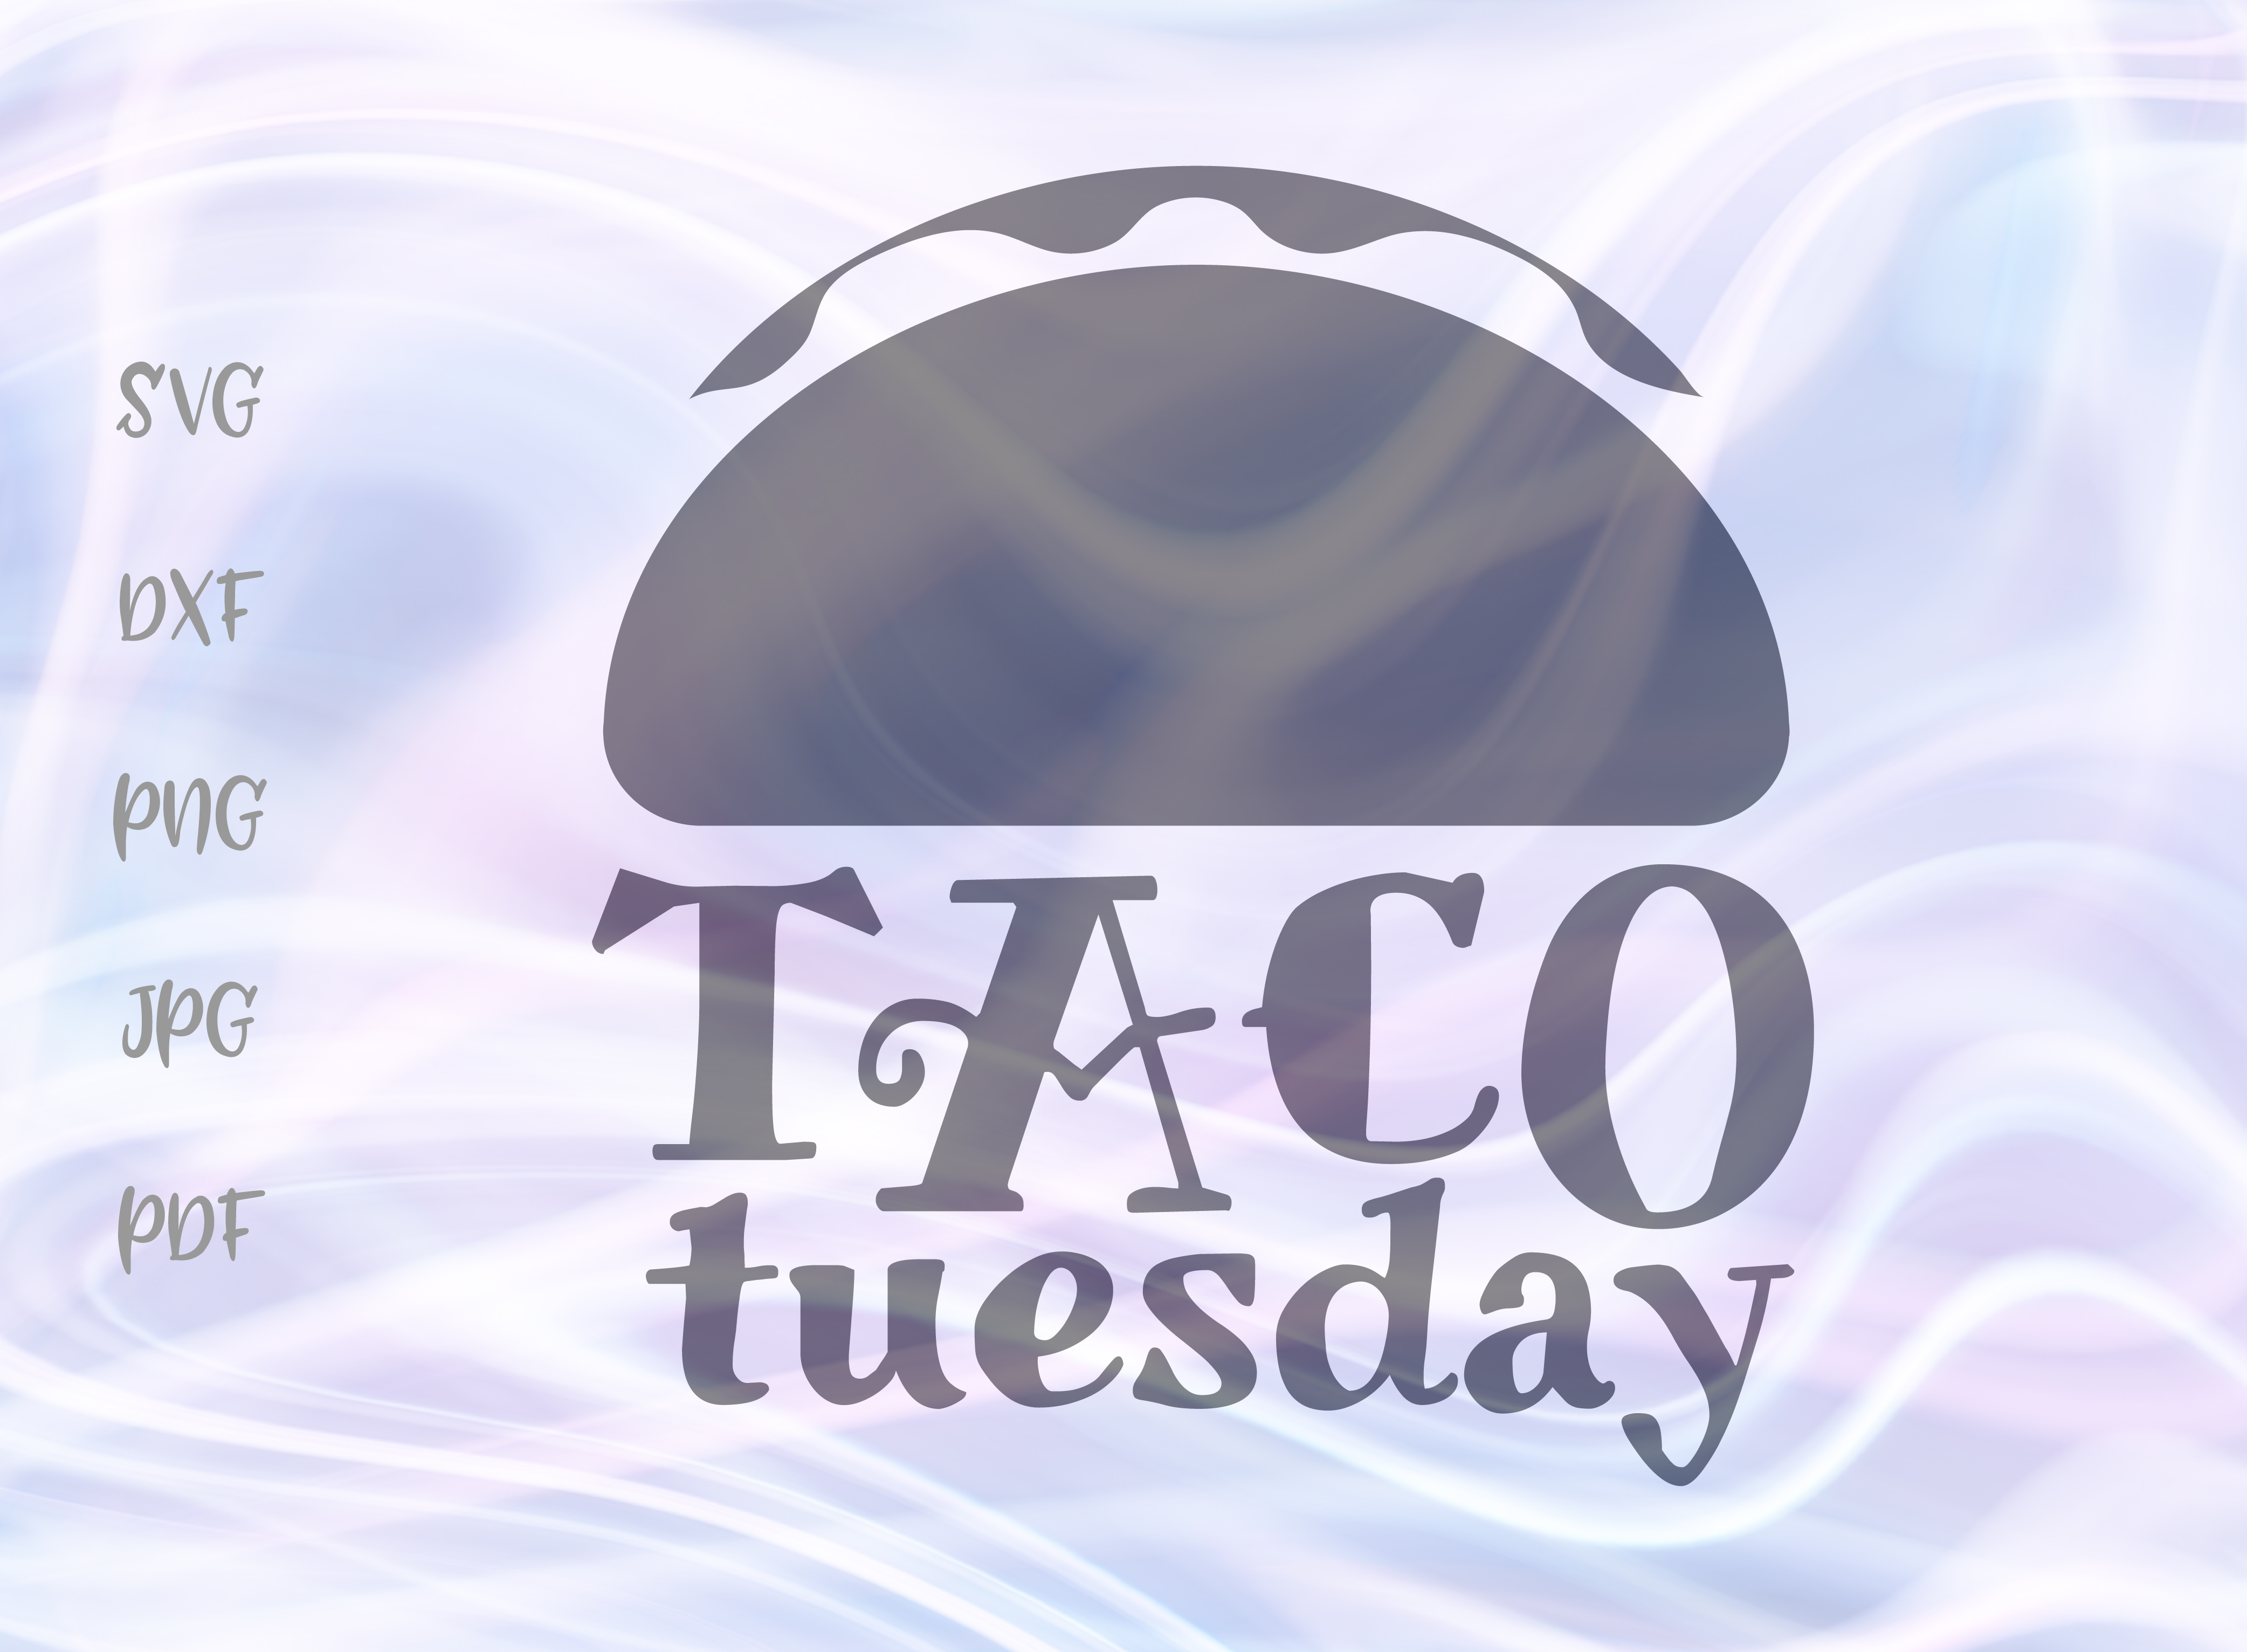 Download Free Taco Tuesday Graphic By Digitals By Hanna Creative Fabrica for Cricut Explore, Silhouette and other cutting machines.